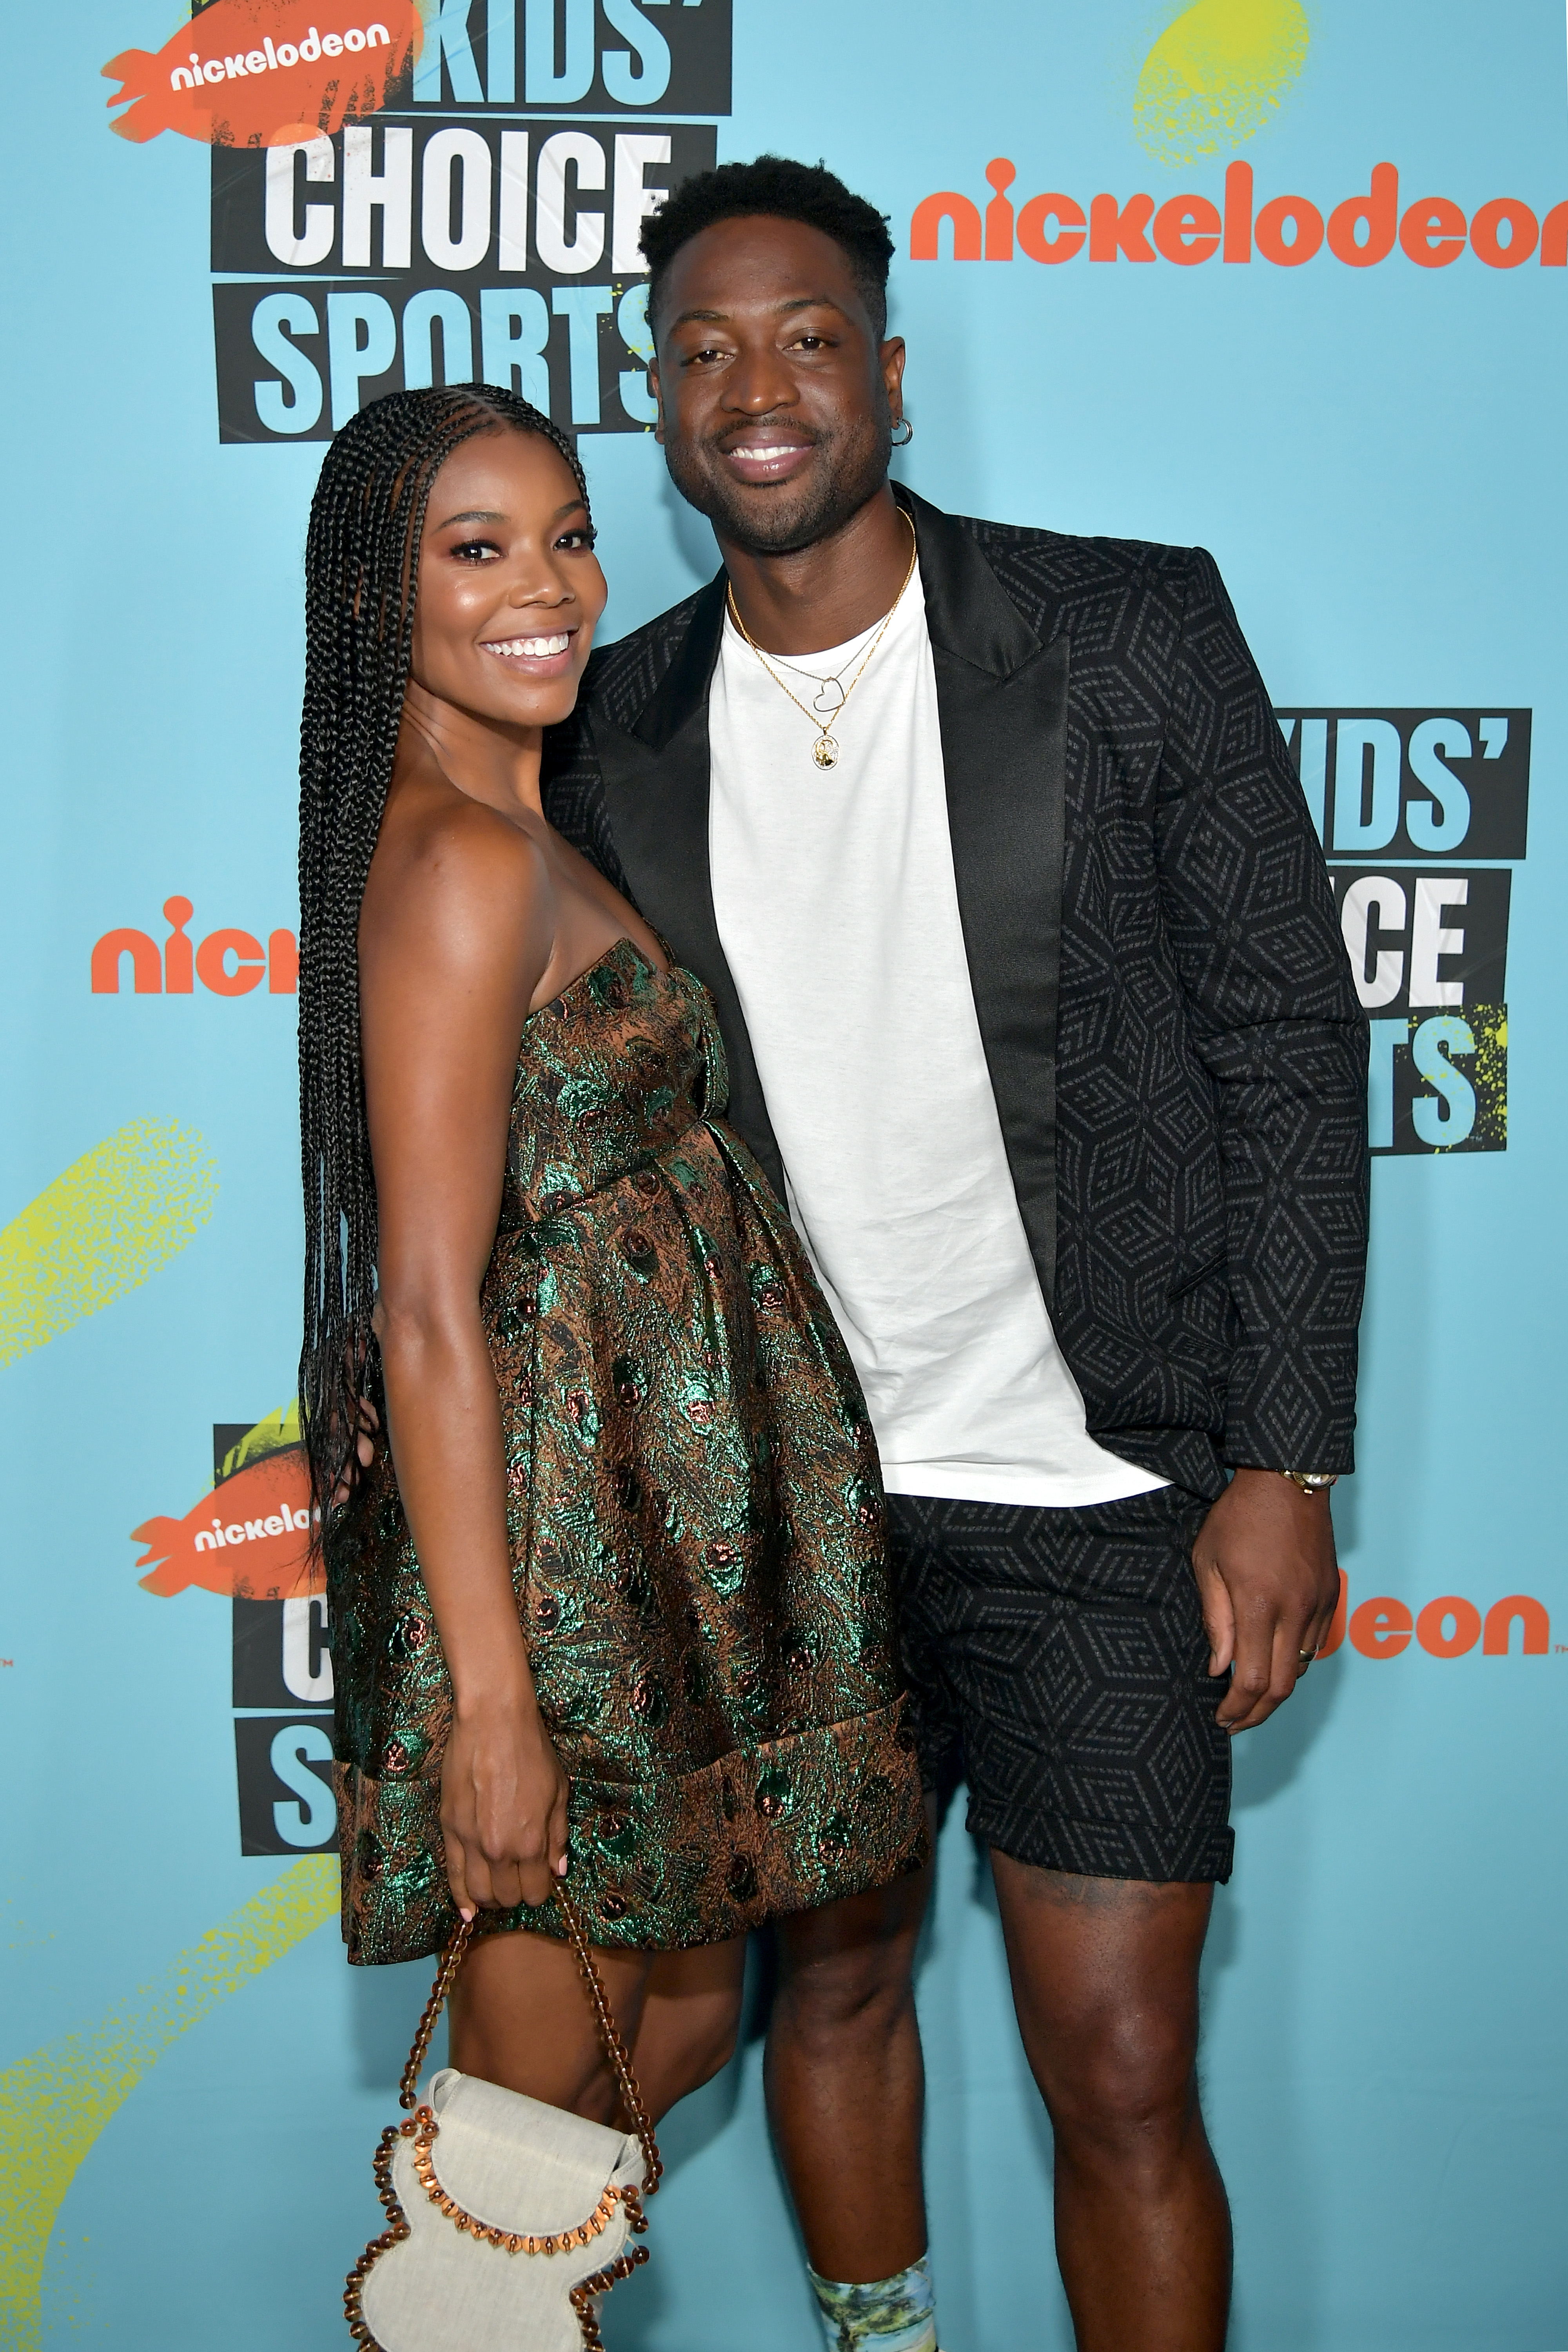 Celebrity couples, stayed together, cheating scandals, Gabrielle Union and Dwyane Wade